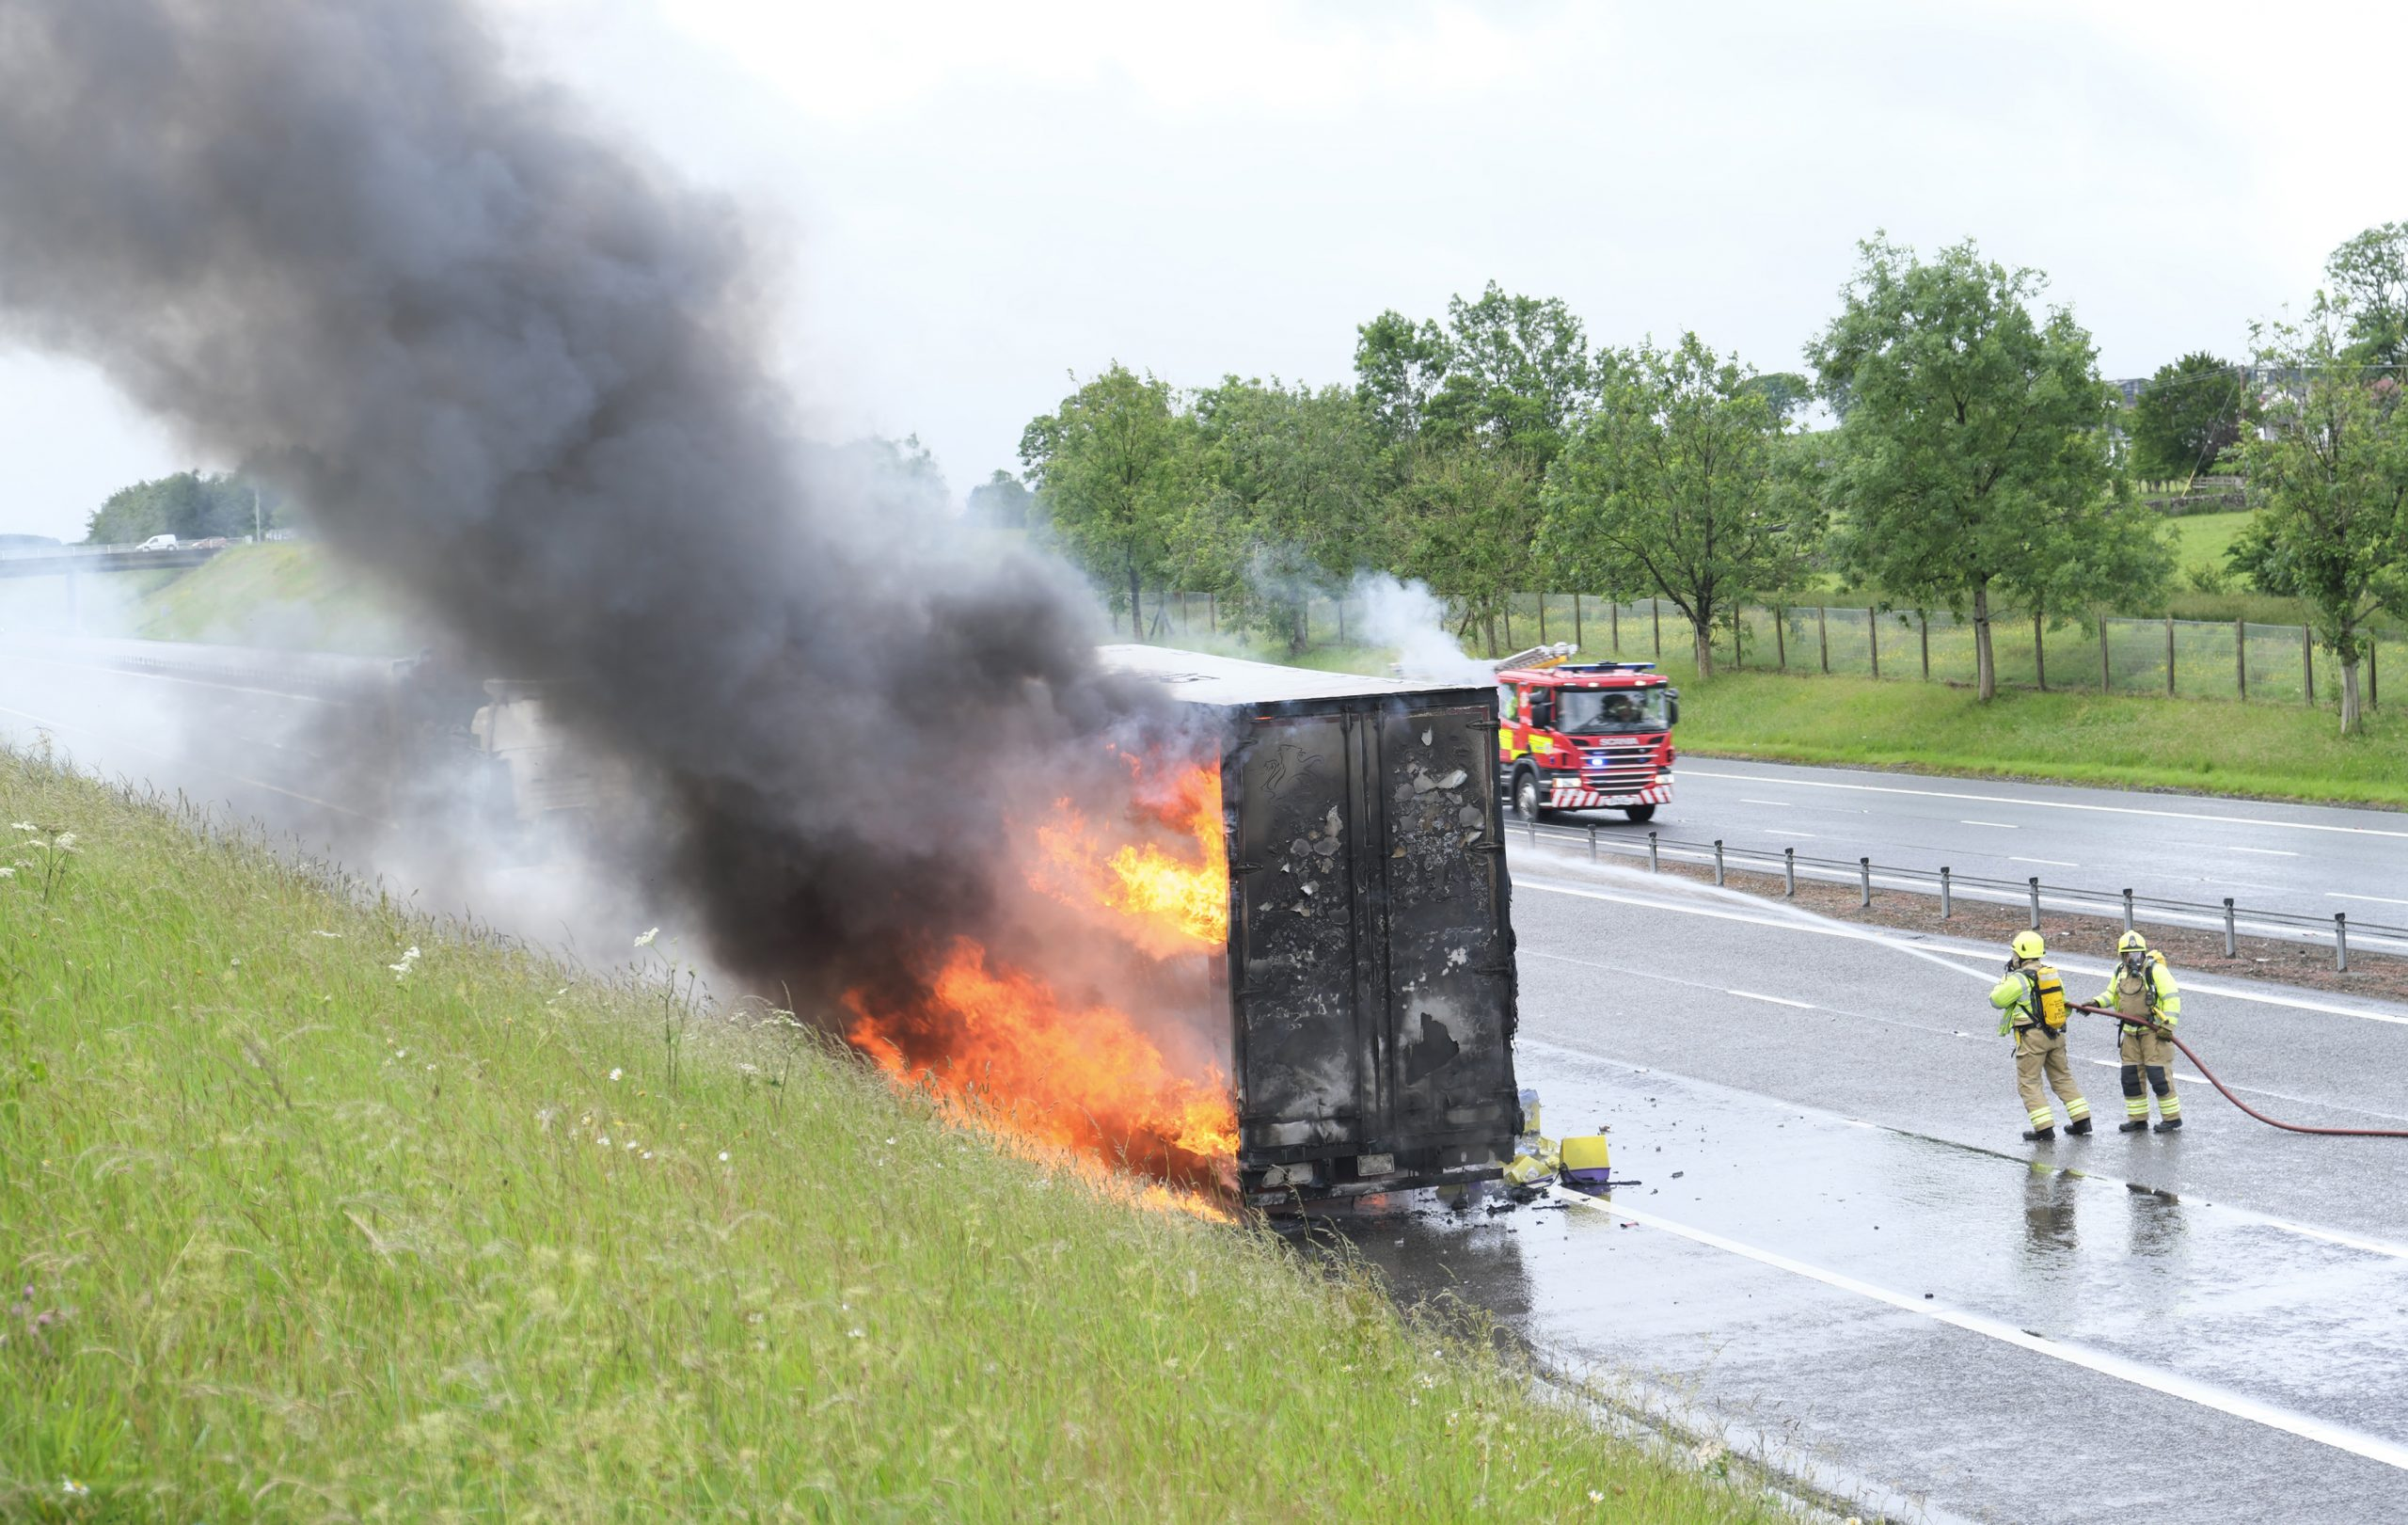 Lorry fire on motorway